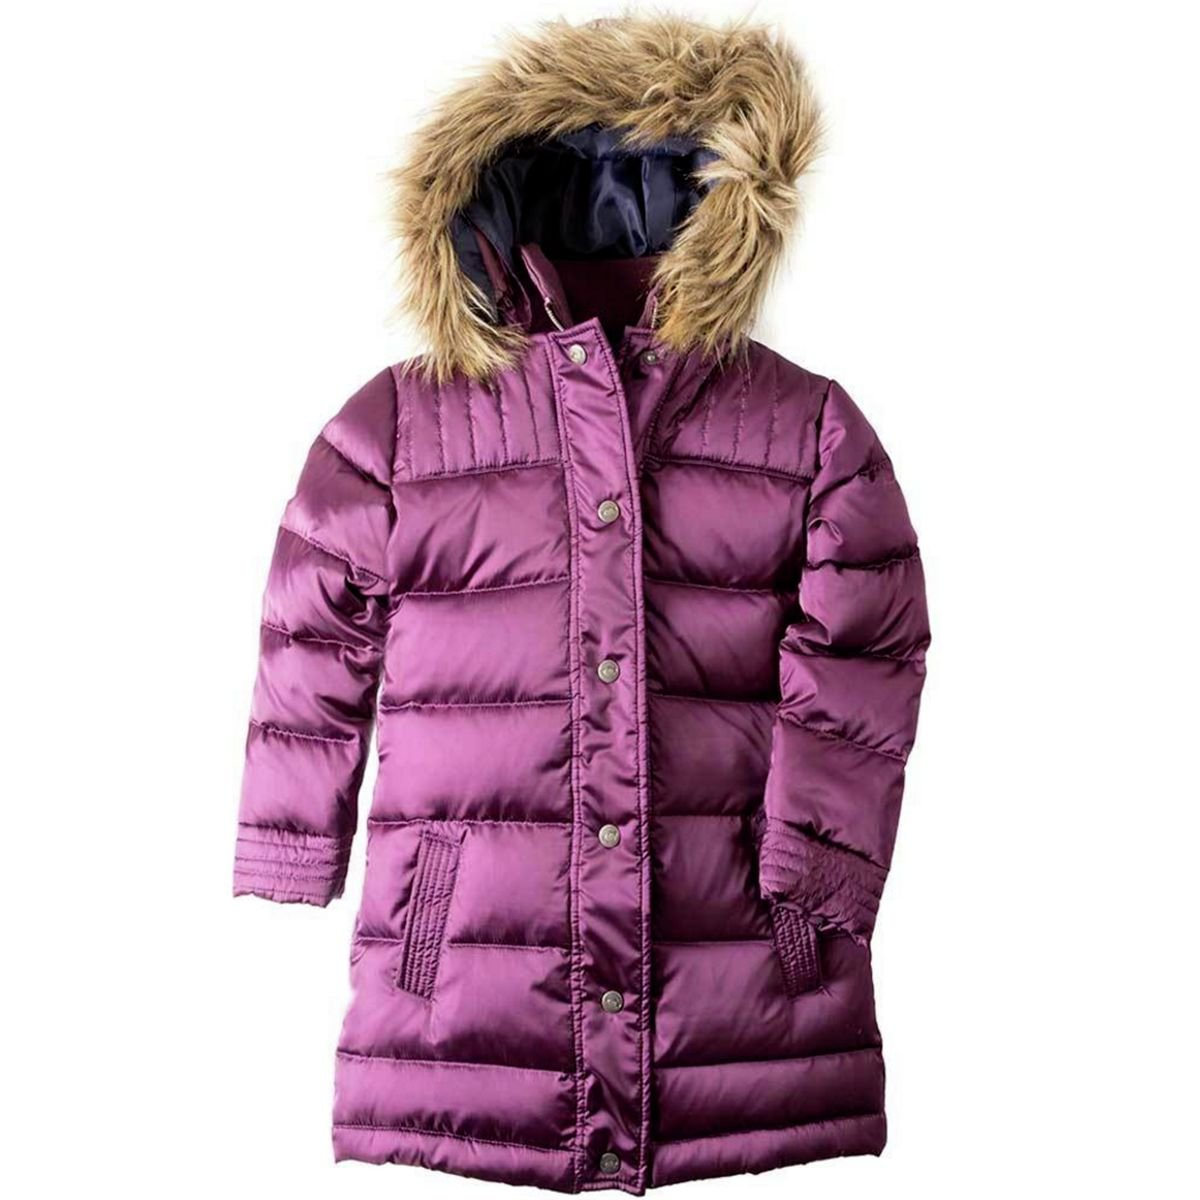 Appaman Kids Baby Girl's Long Down Coat (Toddler/Little Kids/Big Kids) Sugar Plum 8